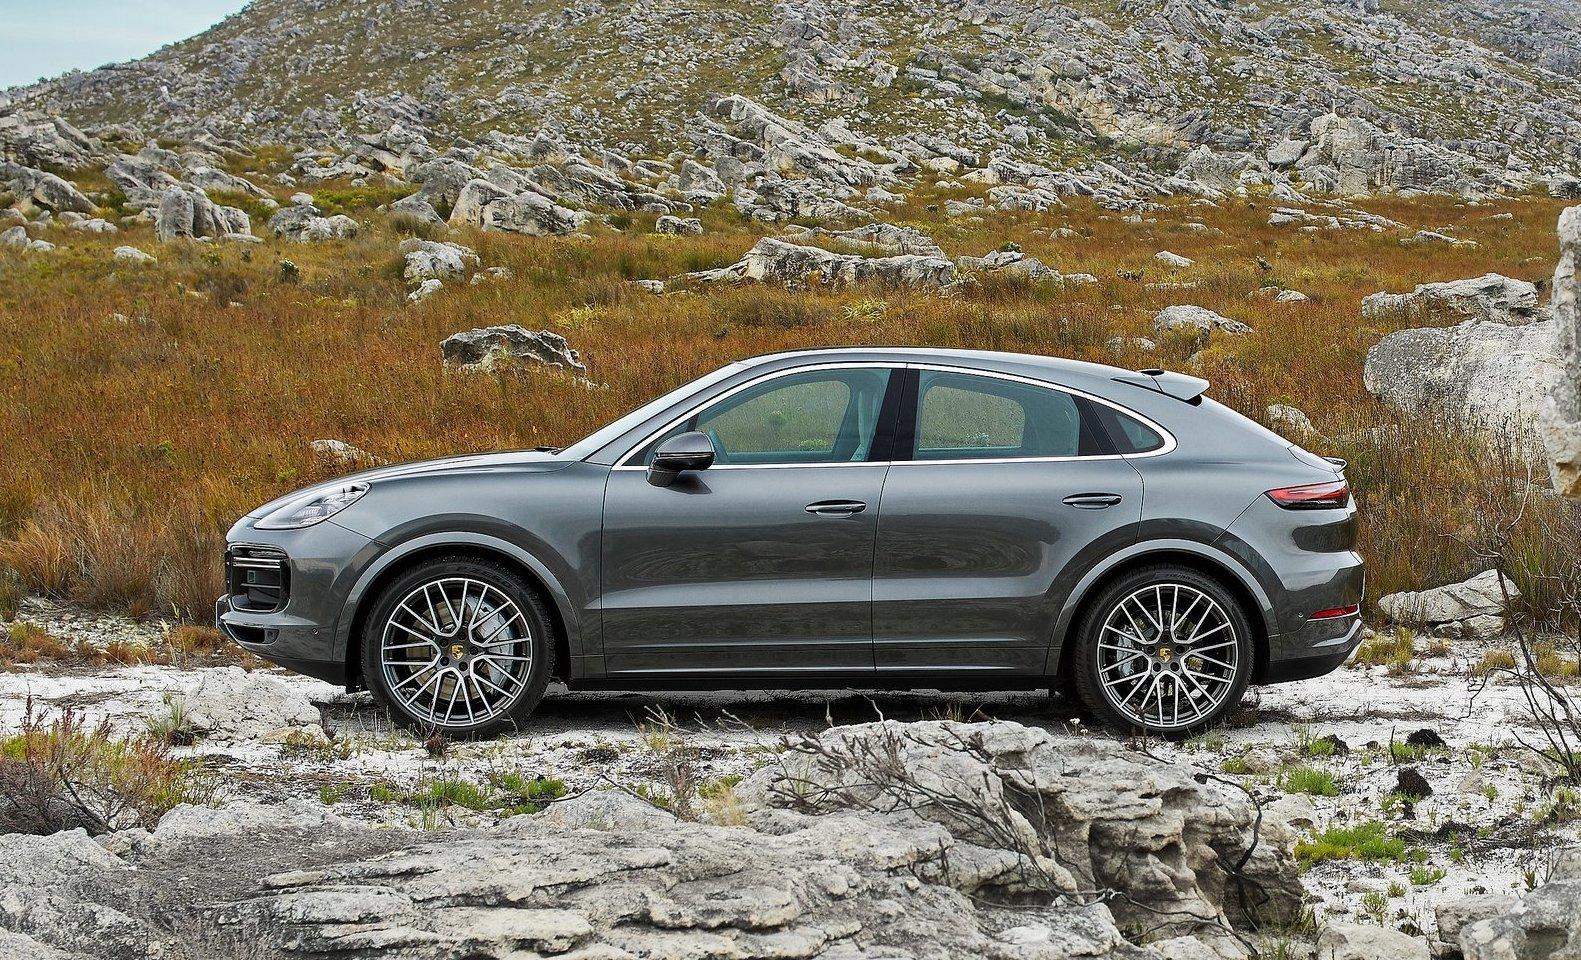 Porsche Cayenne Gts For Sale >> Porsche Cayenne Coupe revealed, now on sale in Australia ...